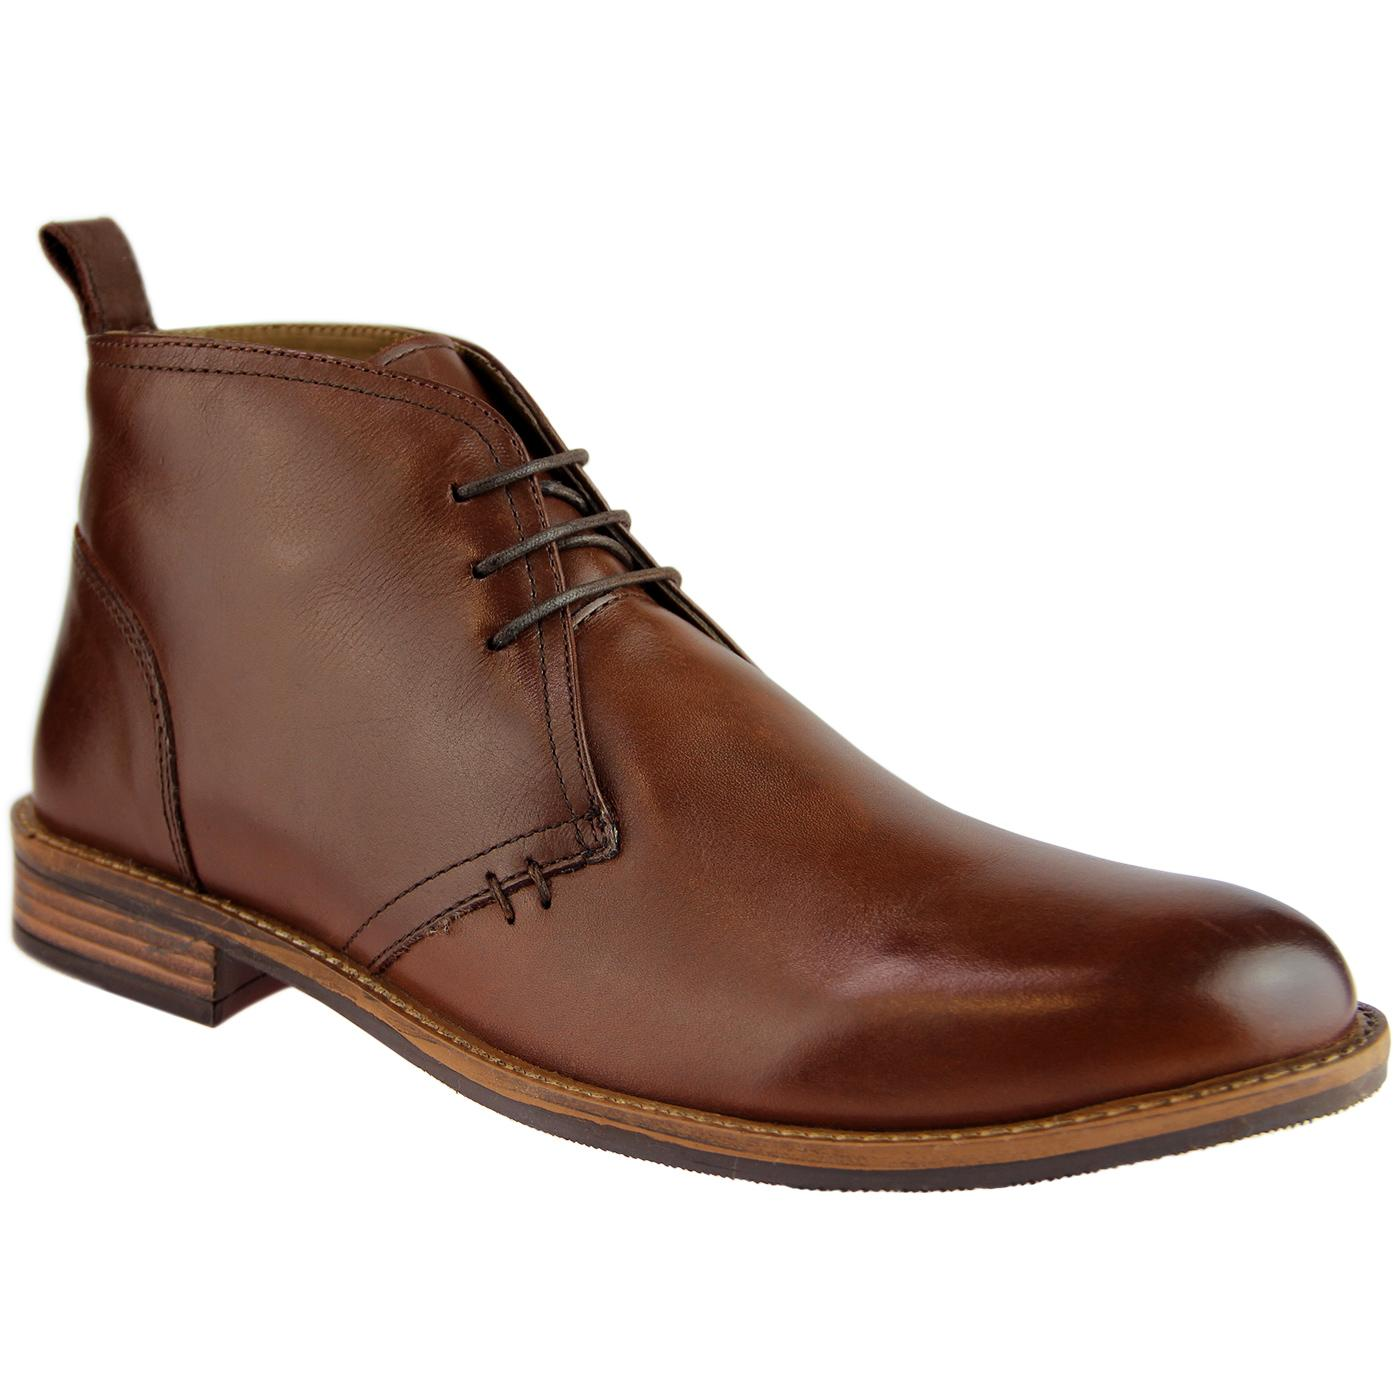 Men's Retro Indie Mod Leather Desert Boot (Brown)